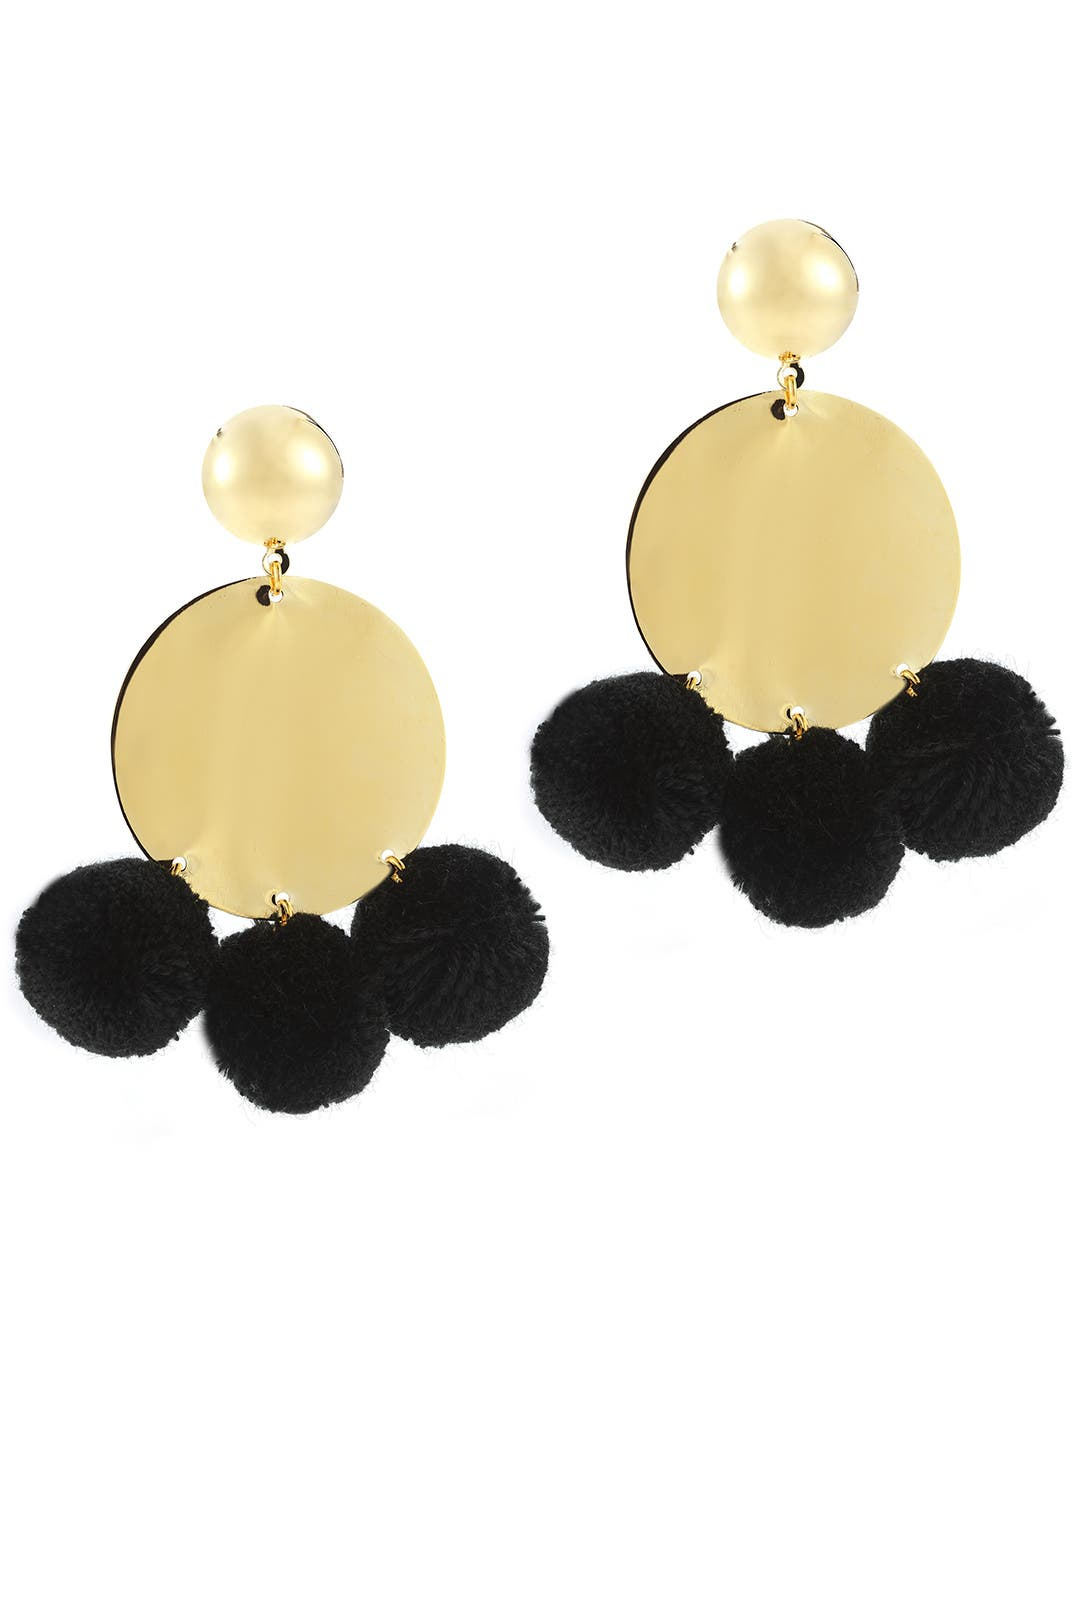 Gold Stevie Earrings By Elizabeth And James Accessories For $20  Rent The  Runway